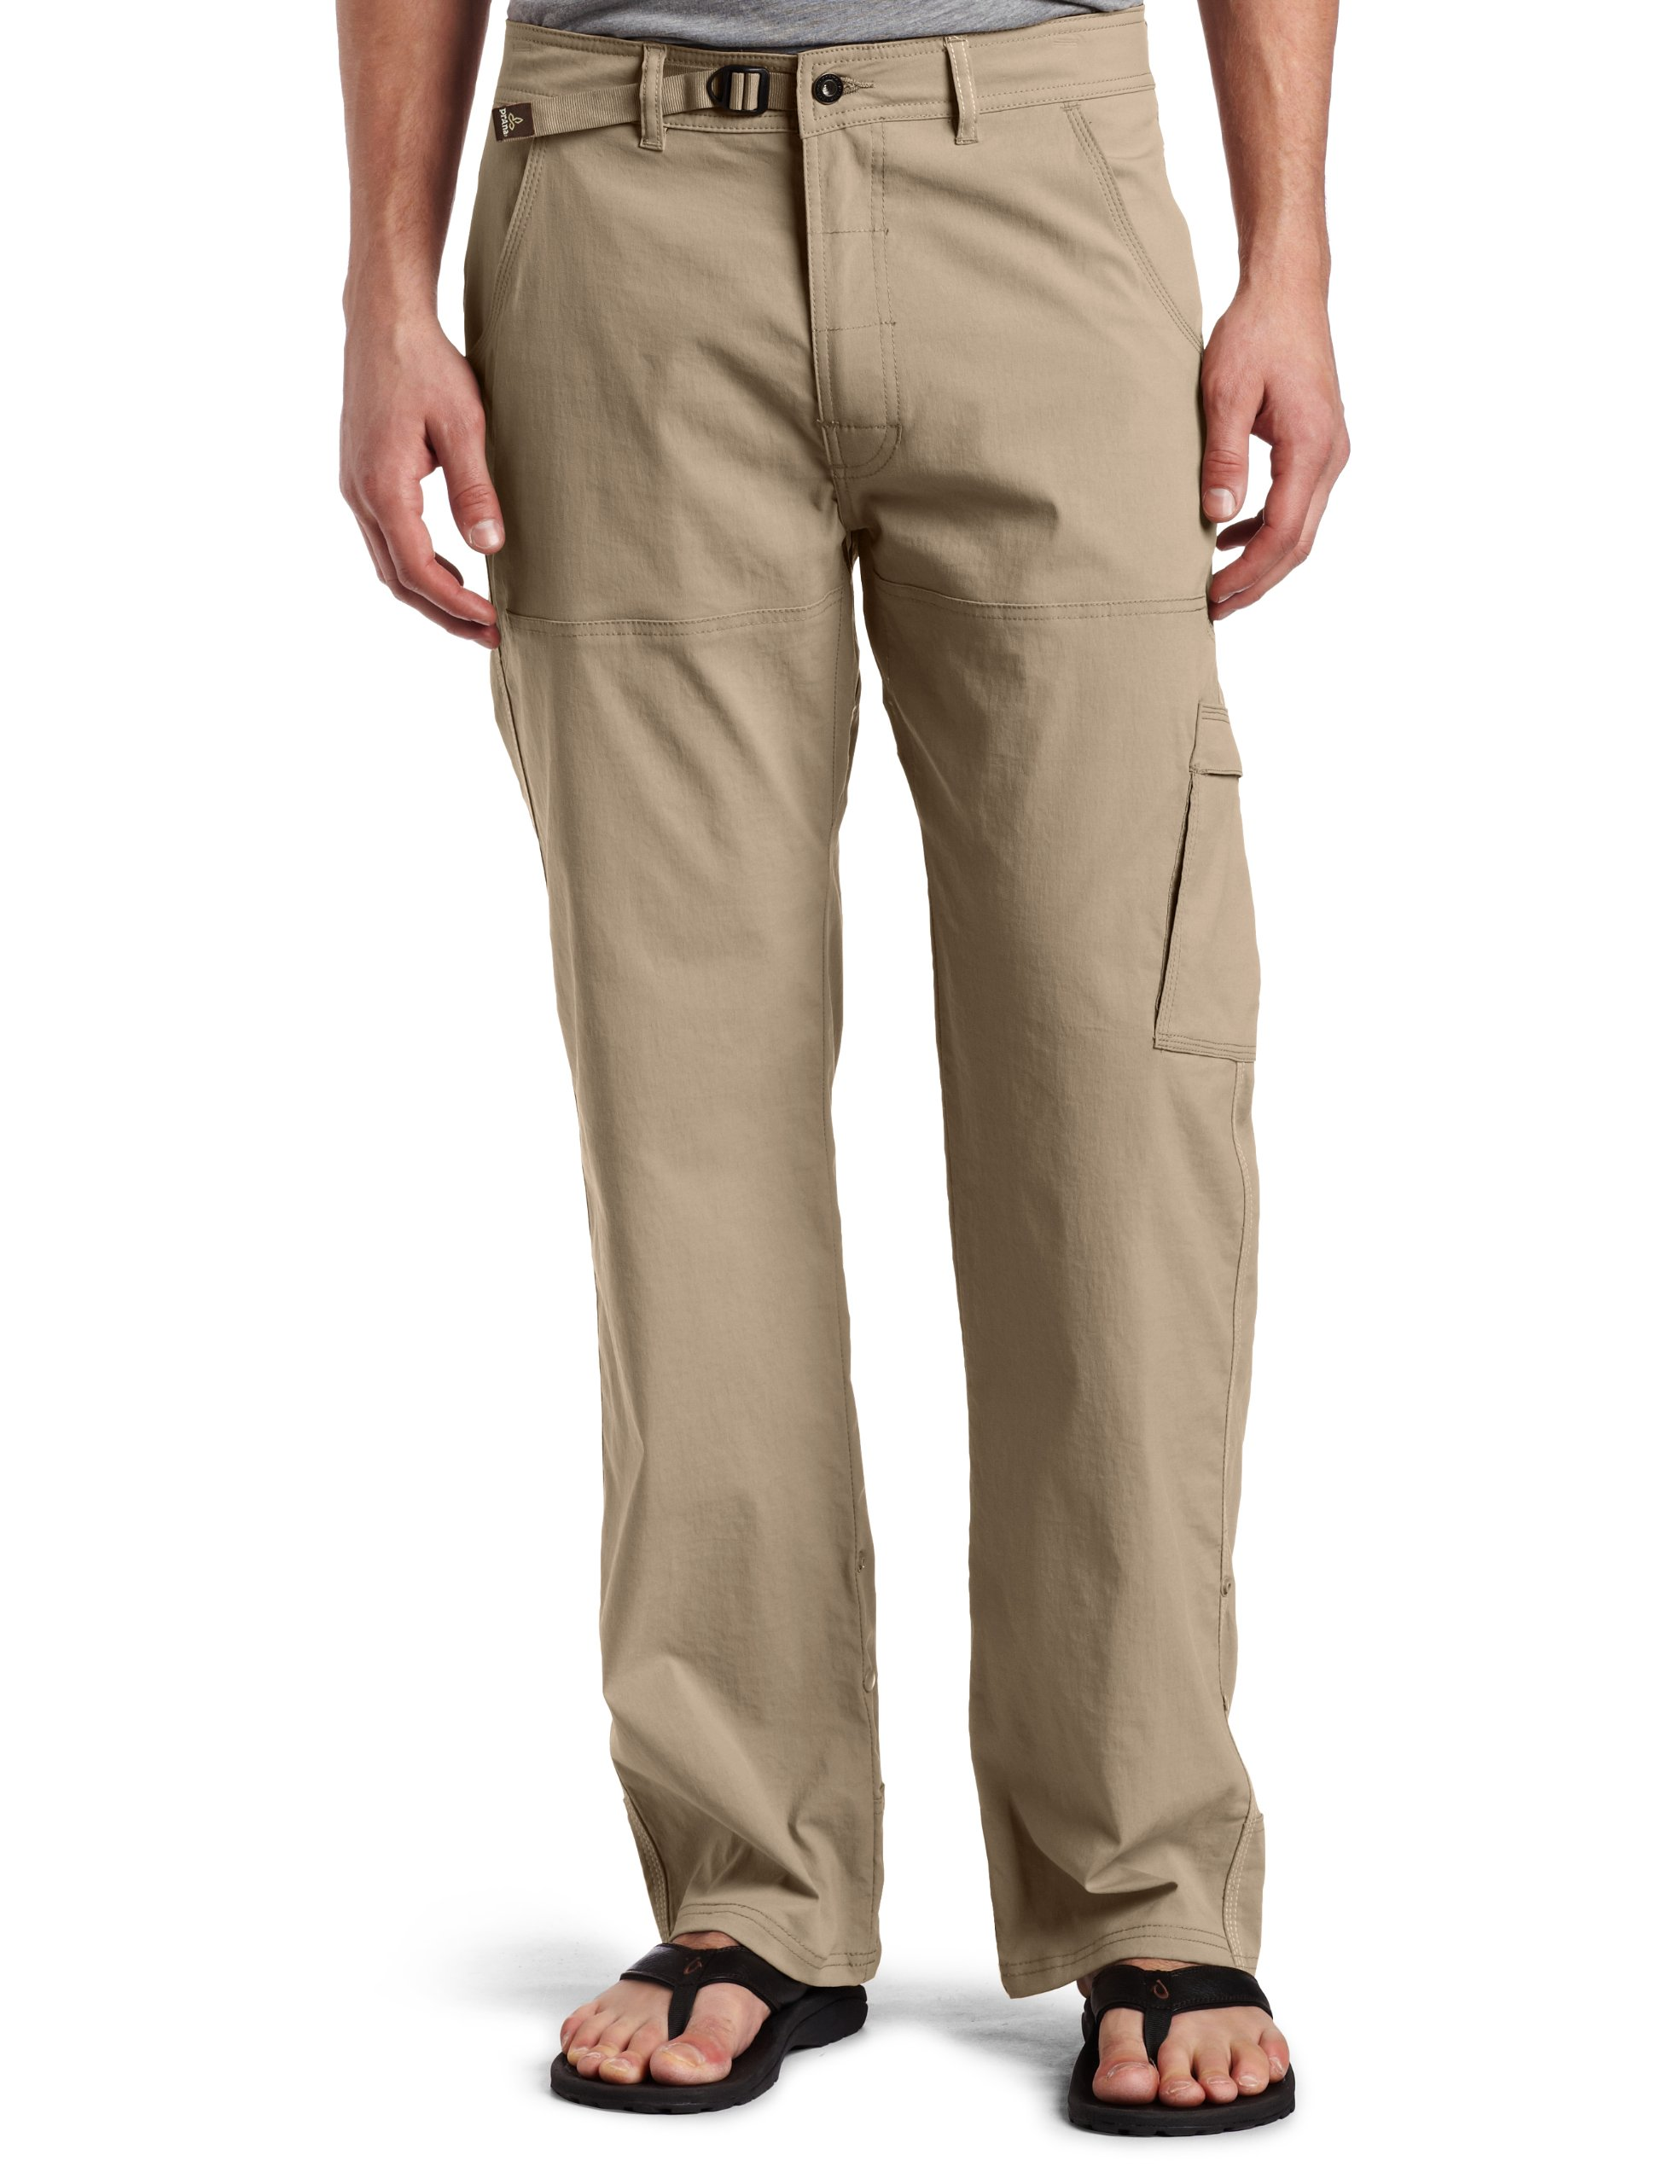 prAna - Men's Stretch Zion Lightweight, Durable, Water Repellent Pants for Hiking and Everyday Wear, 36'' Inseam, Dark Khaki, 34 by prAna